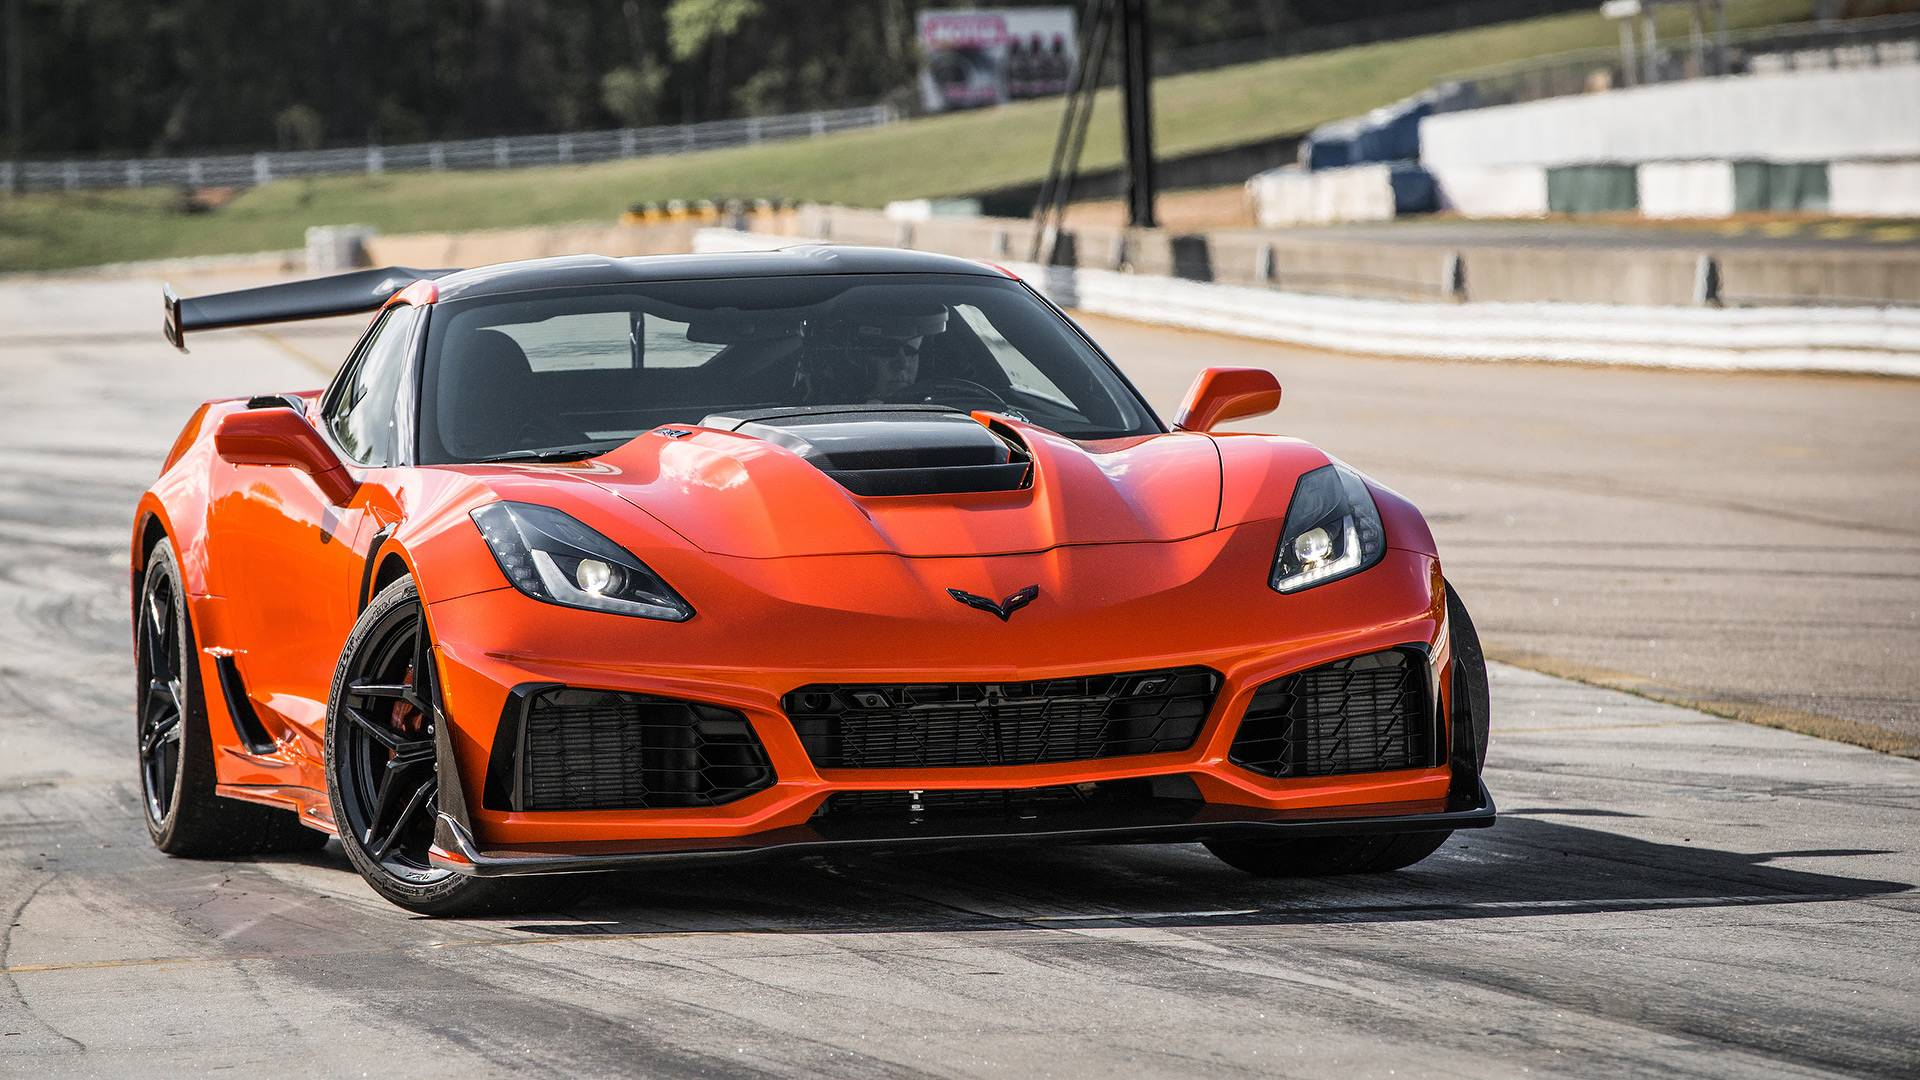 2019 Chevy Corvette ZR1 Clocks 212 MPH Official Top Speed